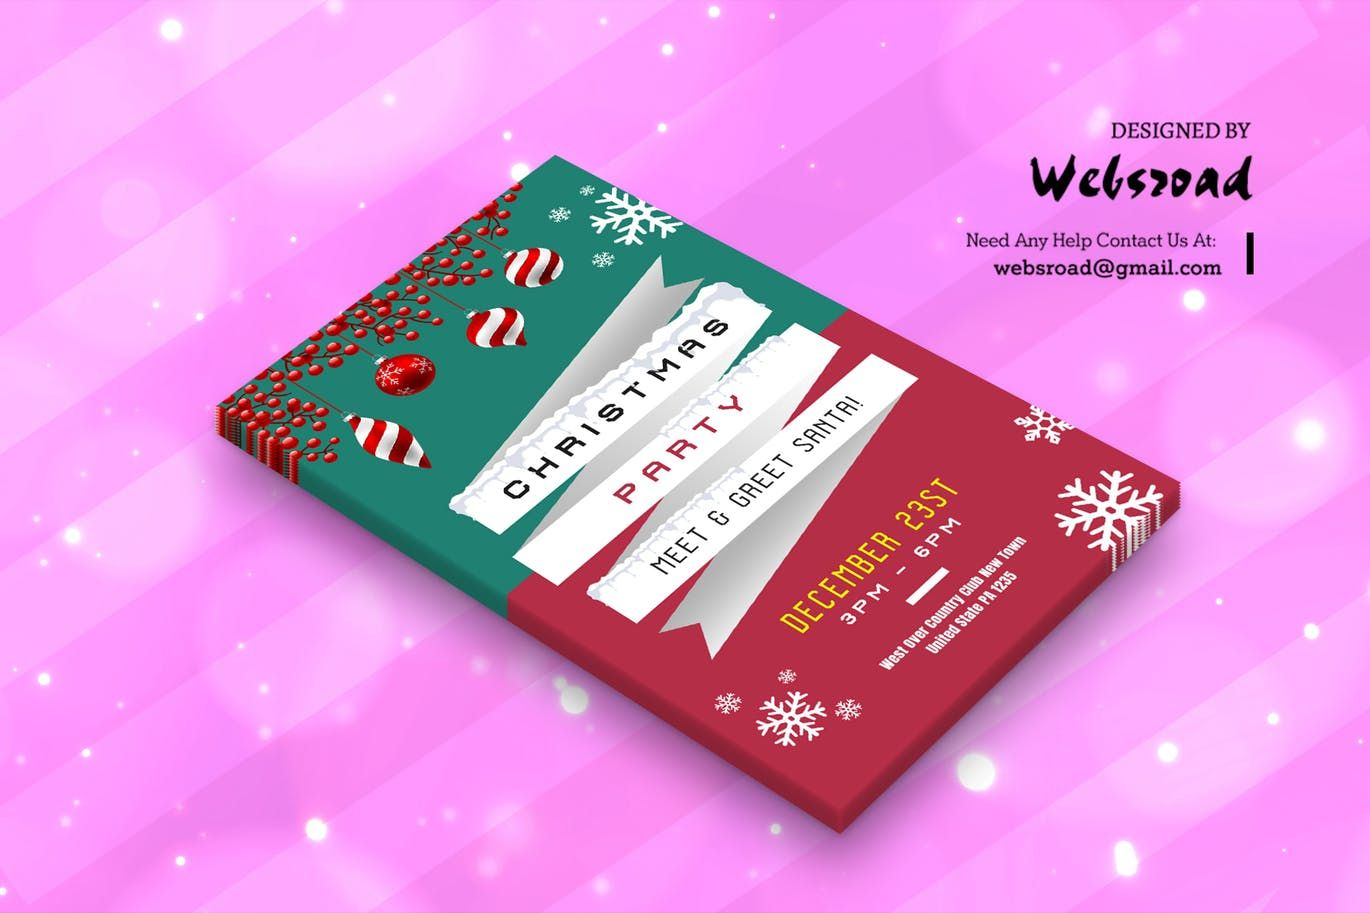 Christmas Greeting Card Template By Websroad On Envato Elements Christmas Greeting Card Template Greeting Card Template Christmas Greeting Cards